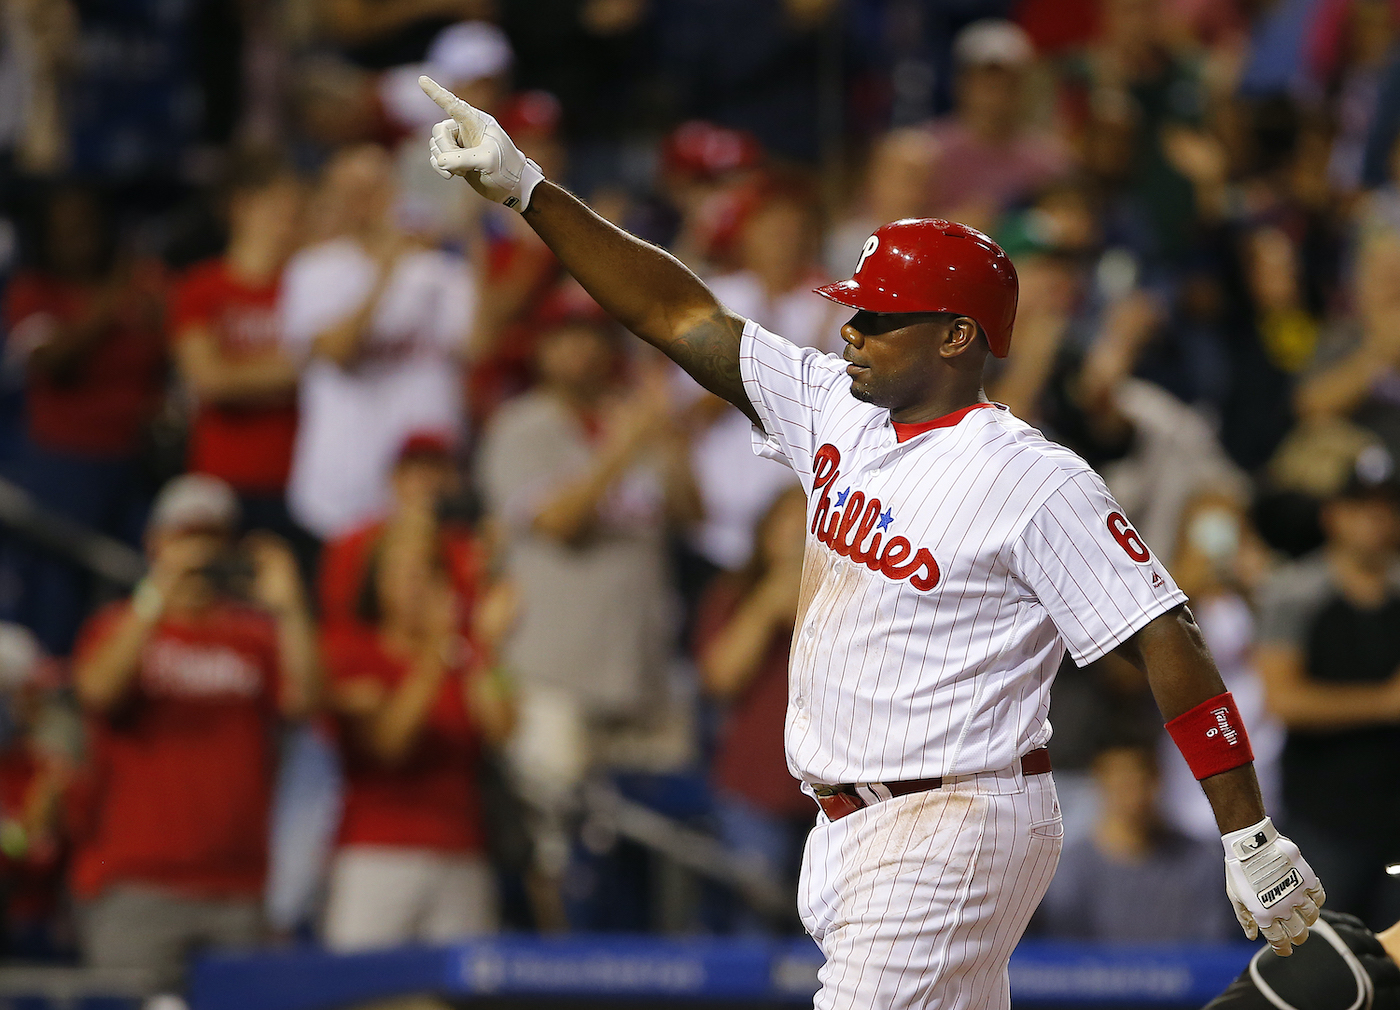 Ryan Howard is one of the leading home run hitters in Philadelphia Phillies history, and he was paid handsomely for his power hitting.